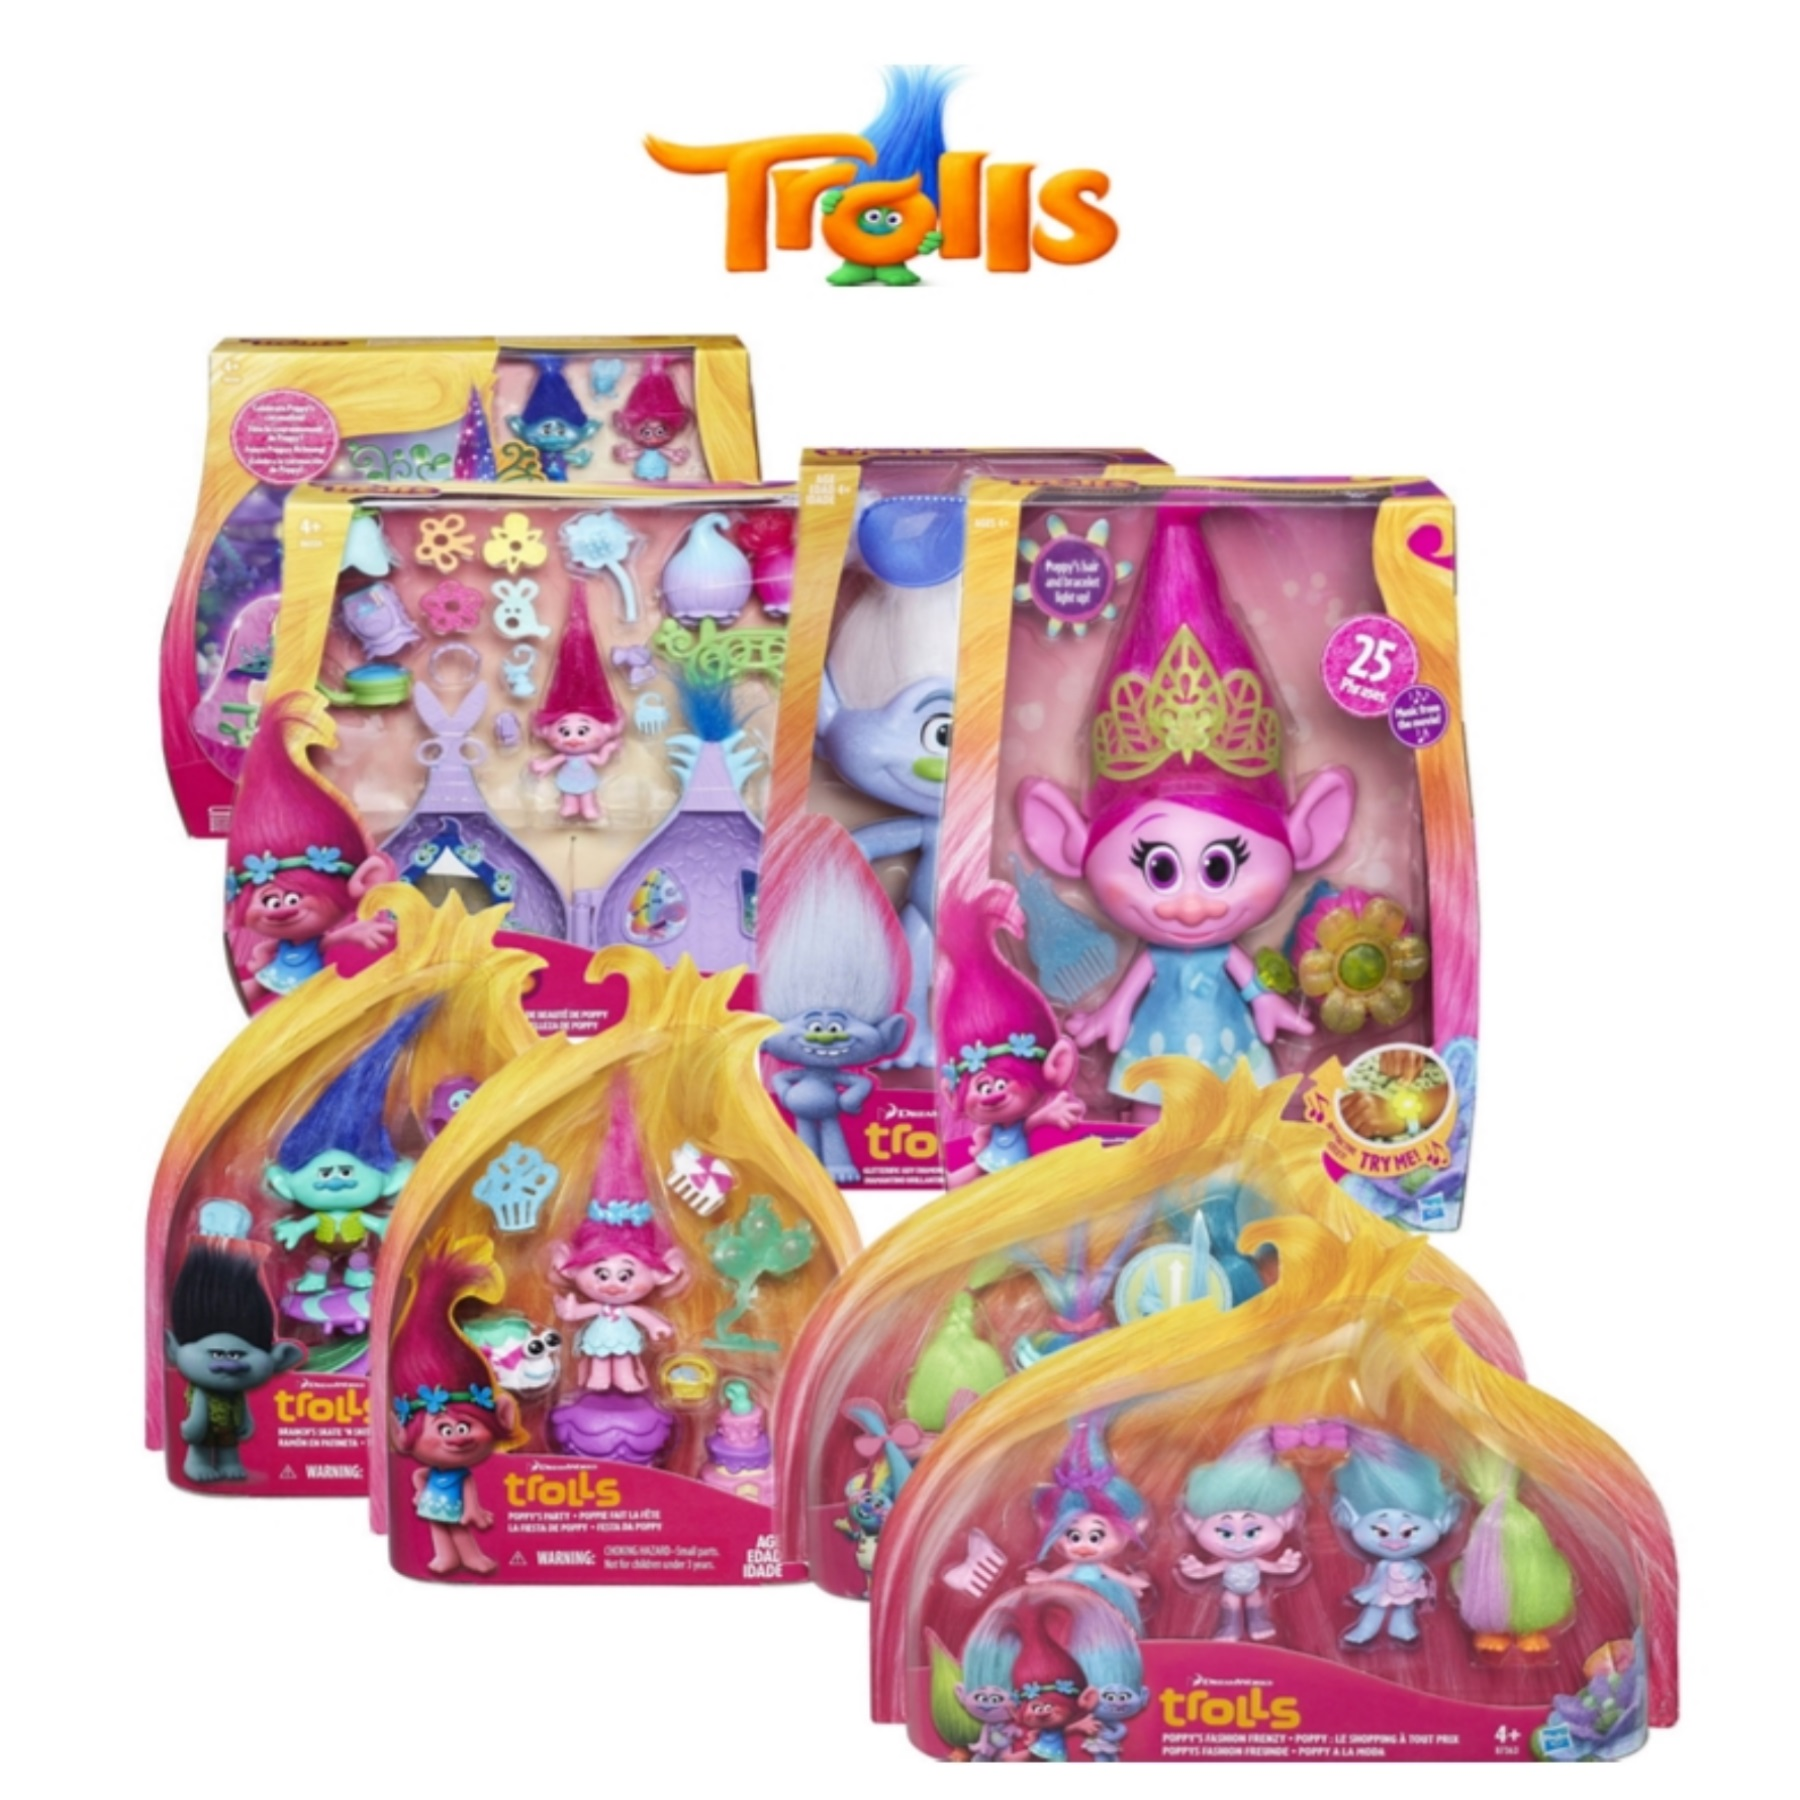 Toys From Hasbro : Hasbro kids dreamworks trolls new collectables fun girls